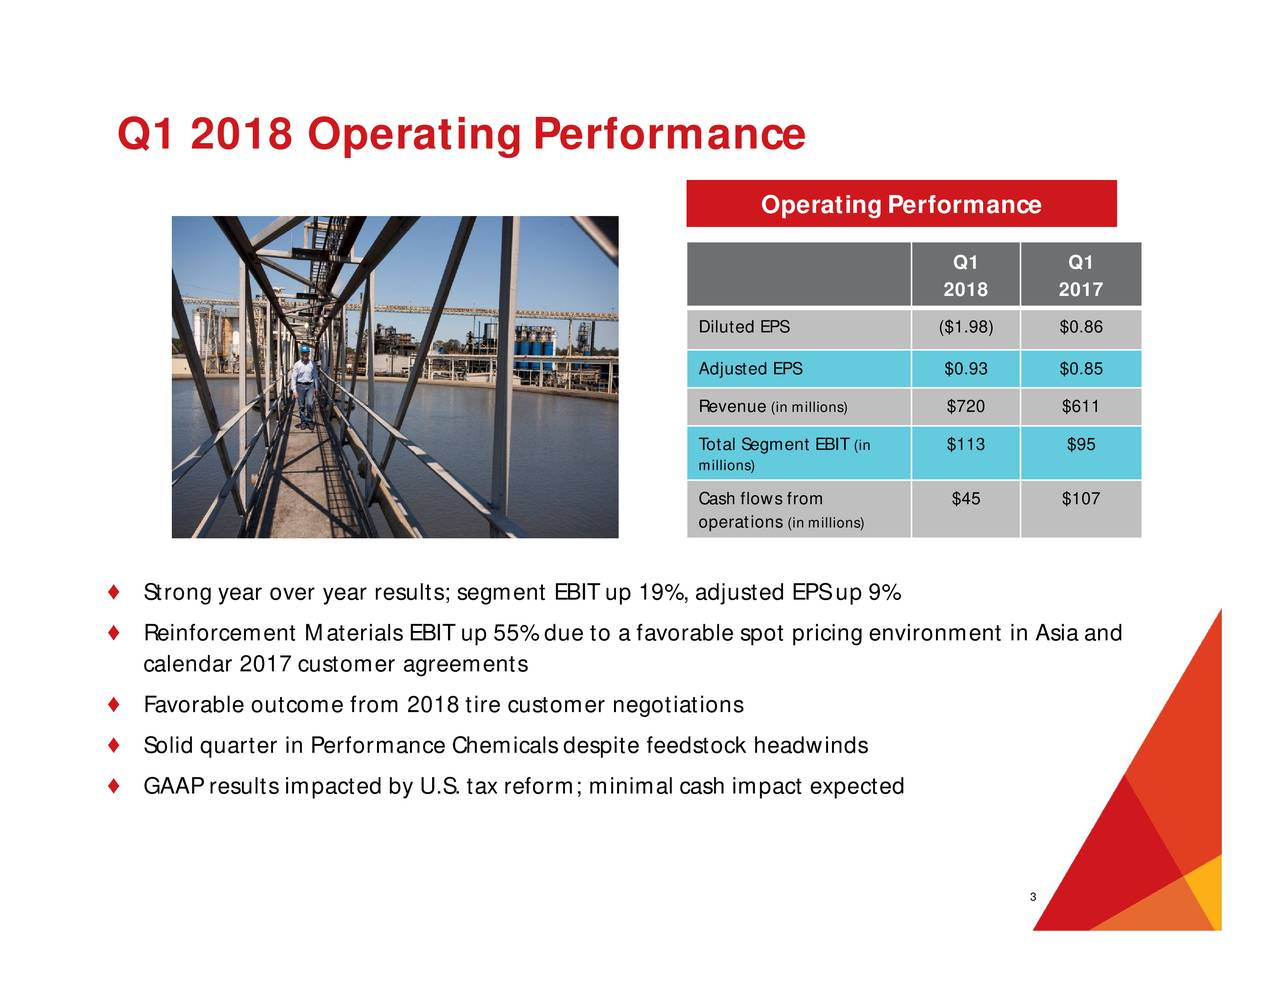 Operating Performance Q1 Q1 2018 2017 Diluted EPS ($1.98) $0.86 Adjusted EPS $0.93 $0.85 Revenue(in millions) $720 $611 Total Segment EB(in $113 $95 millions) Cash flows from $45 $107 operation(inmillions) ♦ Strong year over year results; segment EBIT up 19%, adjusted EPS up 9% ♦ Reinforcement Materials EBIT up 55% due to a favorable spot pricing environment in Asia and calendar 2017 customer agreements ♦ Favorable outcome from 2018 tire customer negotiations ♦ Solid quarter in Performance Chemicals despite feedstock headwinds ♦ GAAP results impacted by U.S. tax reform; minimal cash impact expected 3